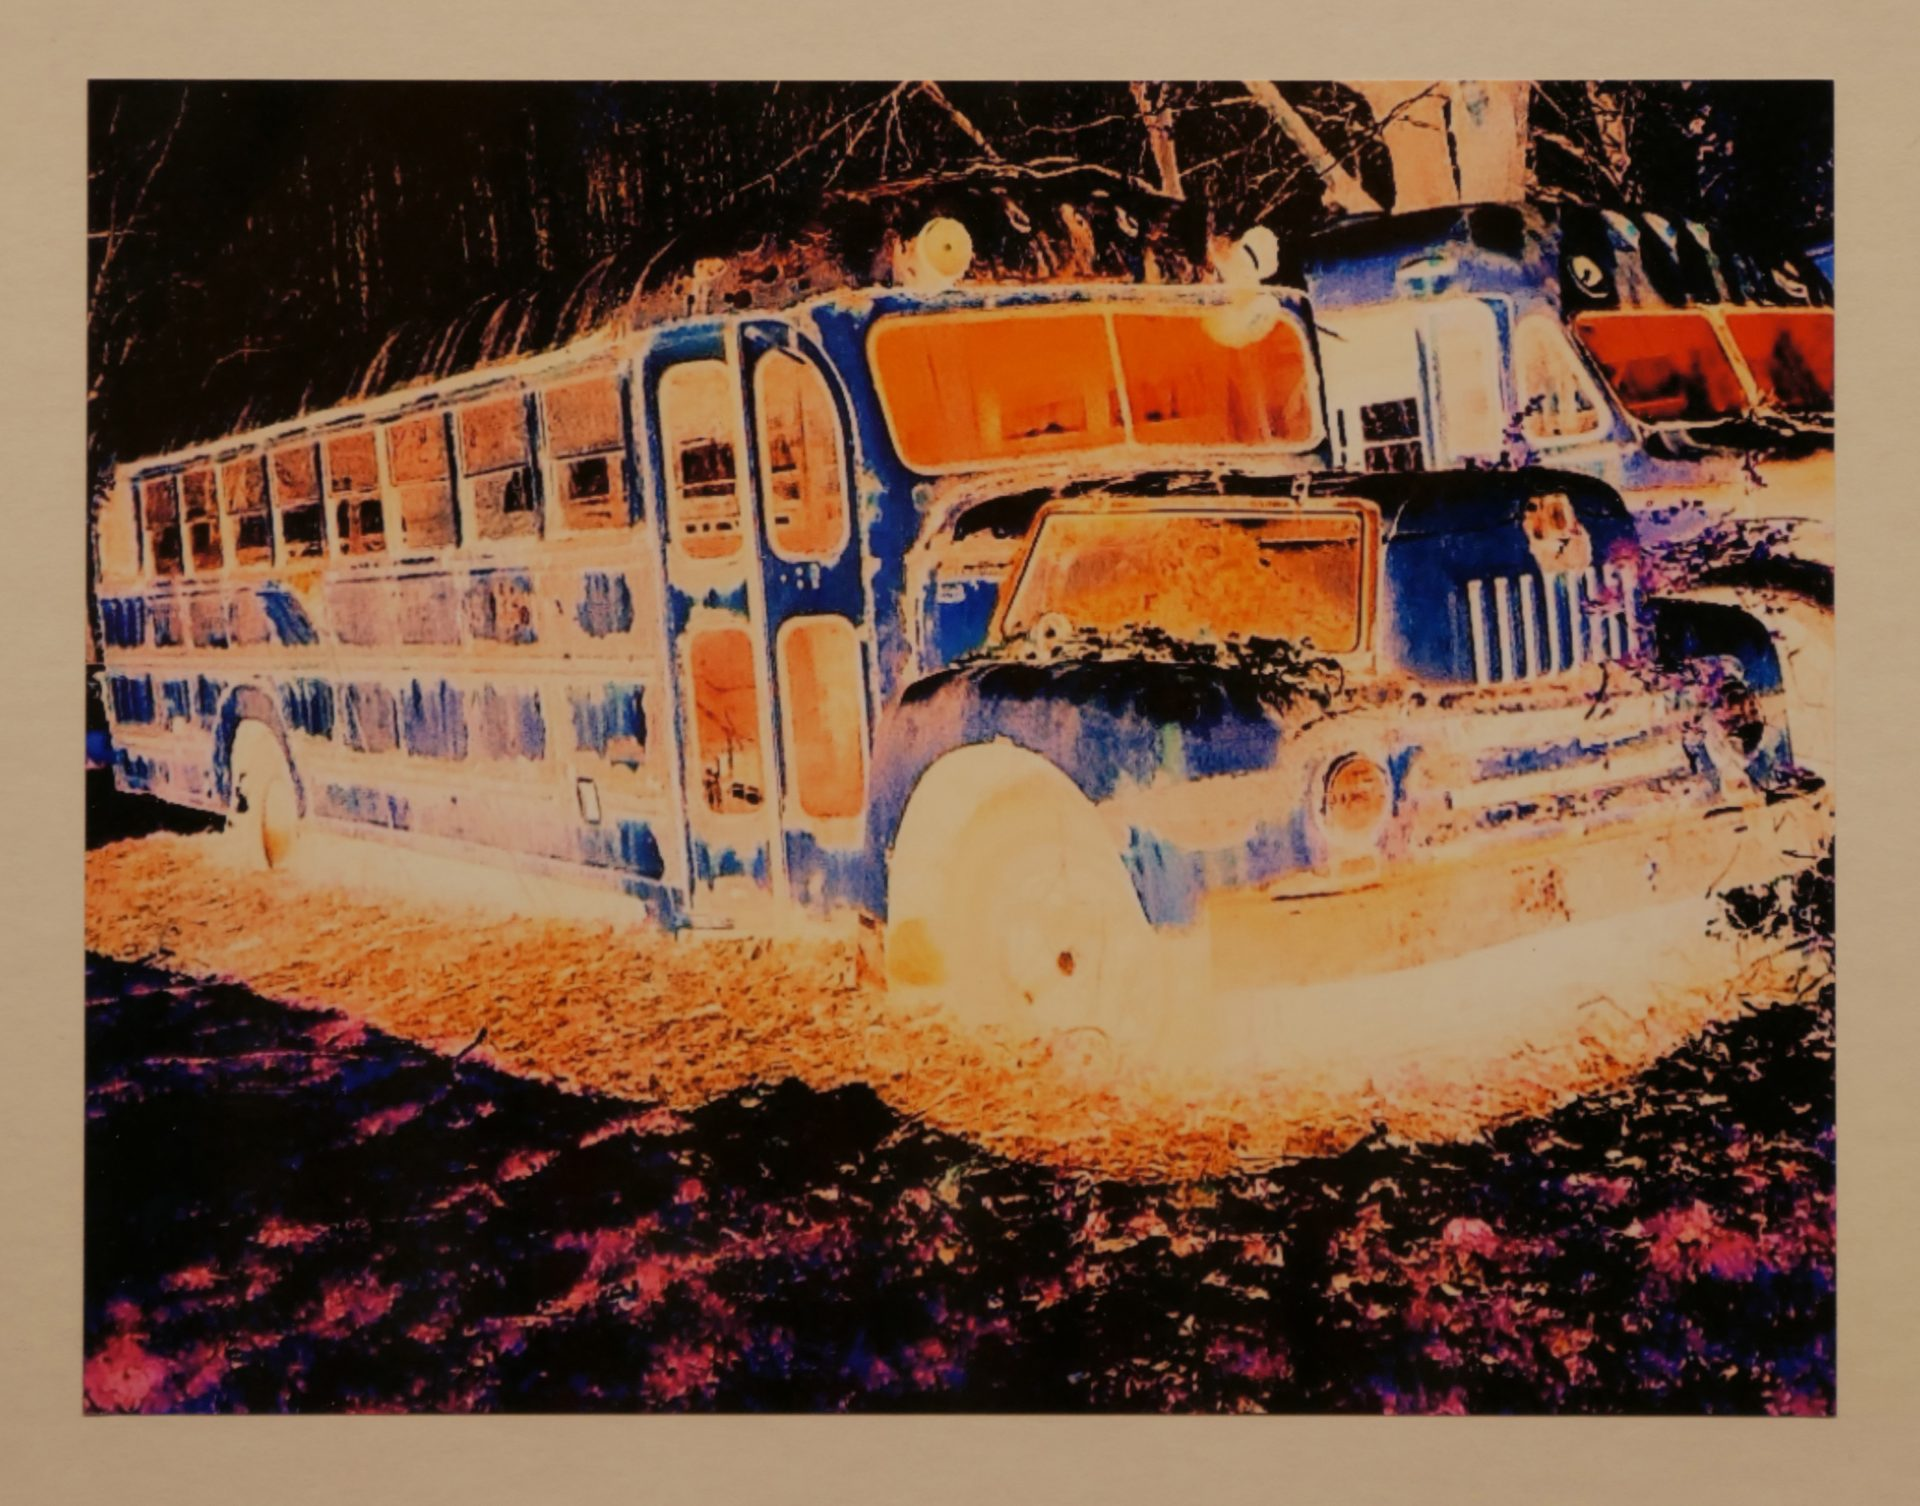 'School's Out' by Harry Spilker (digital photography)